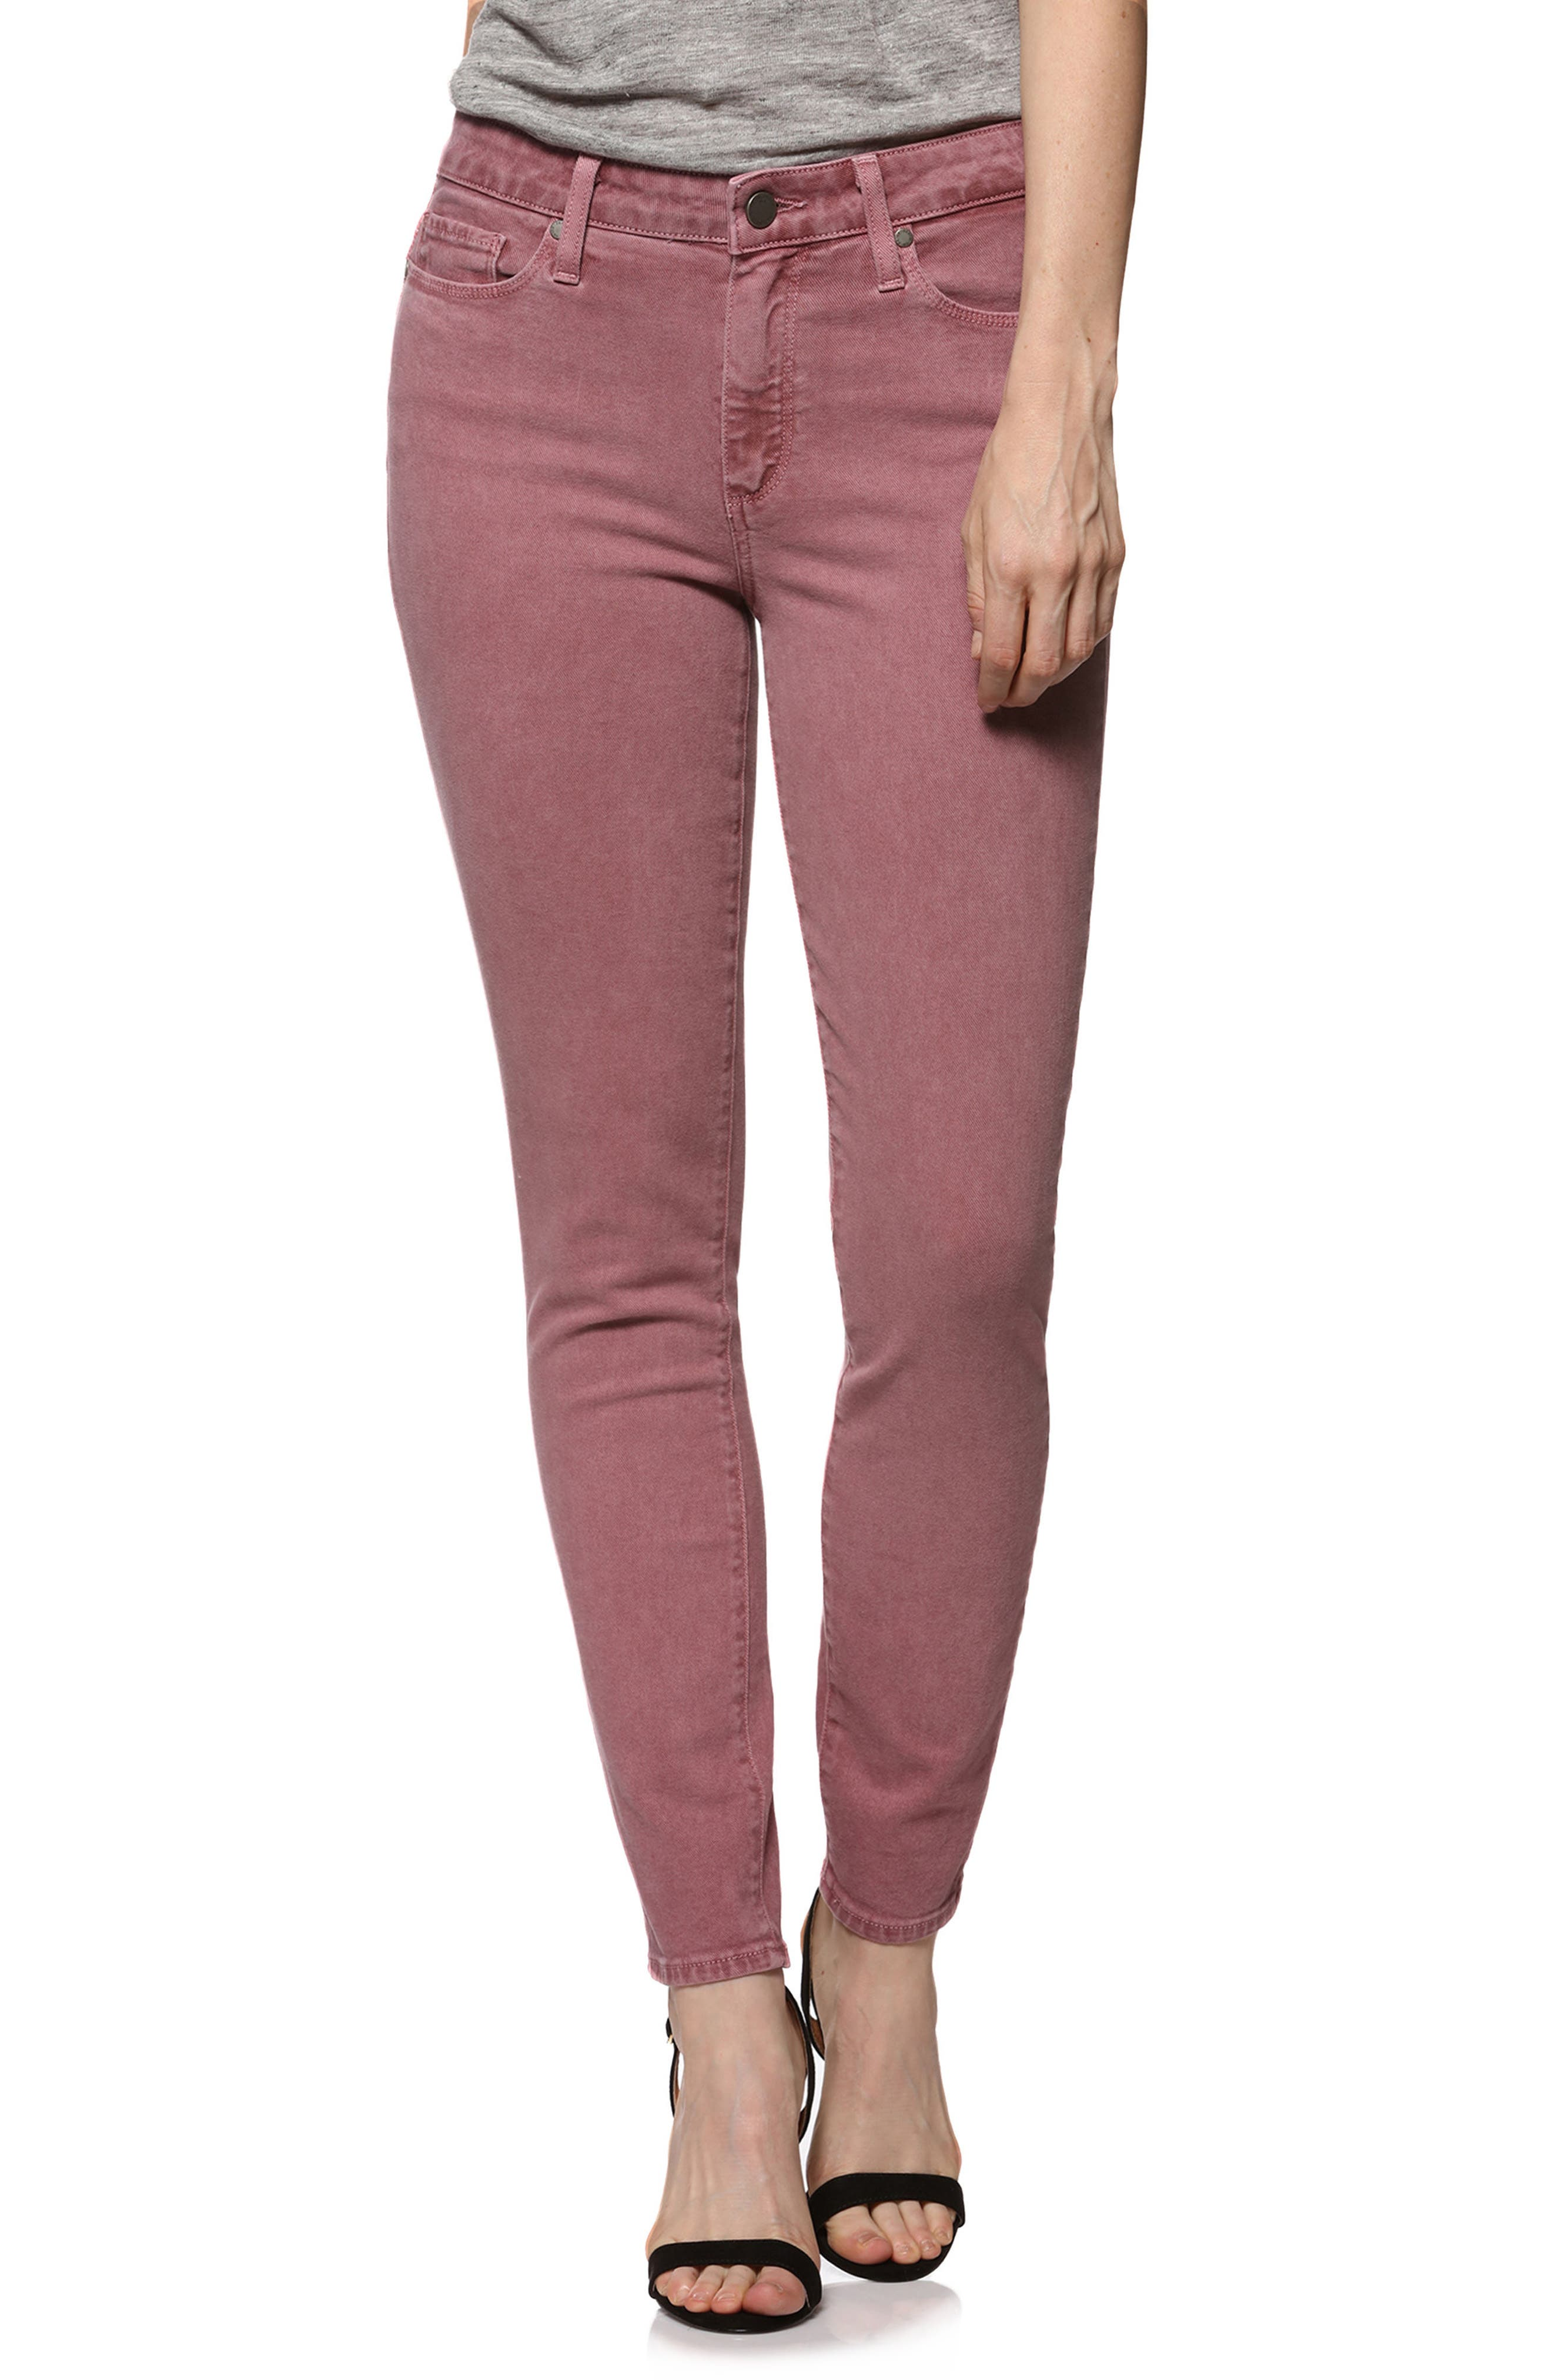 Hoxton High Waist Ankle Ultra Skinny Jeans,                             Main thumbnail 1, color,                             650